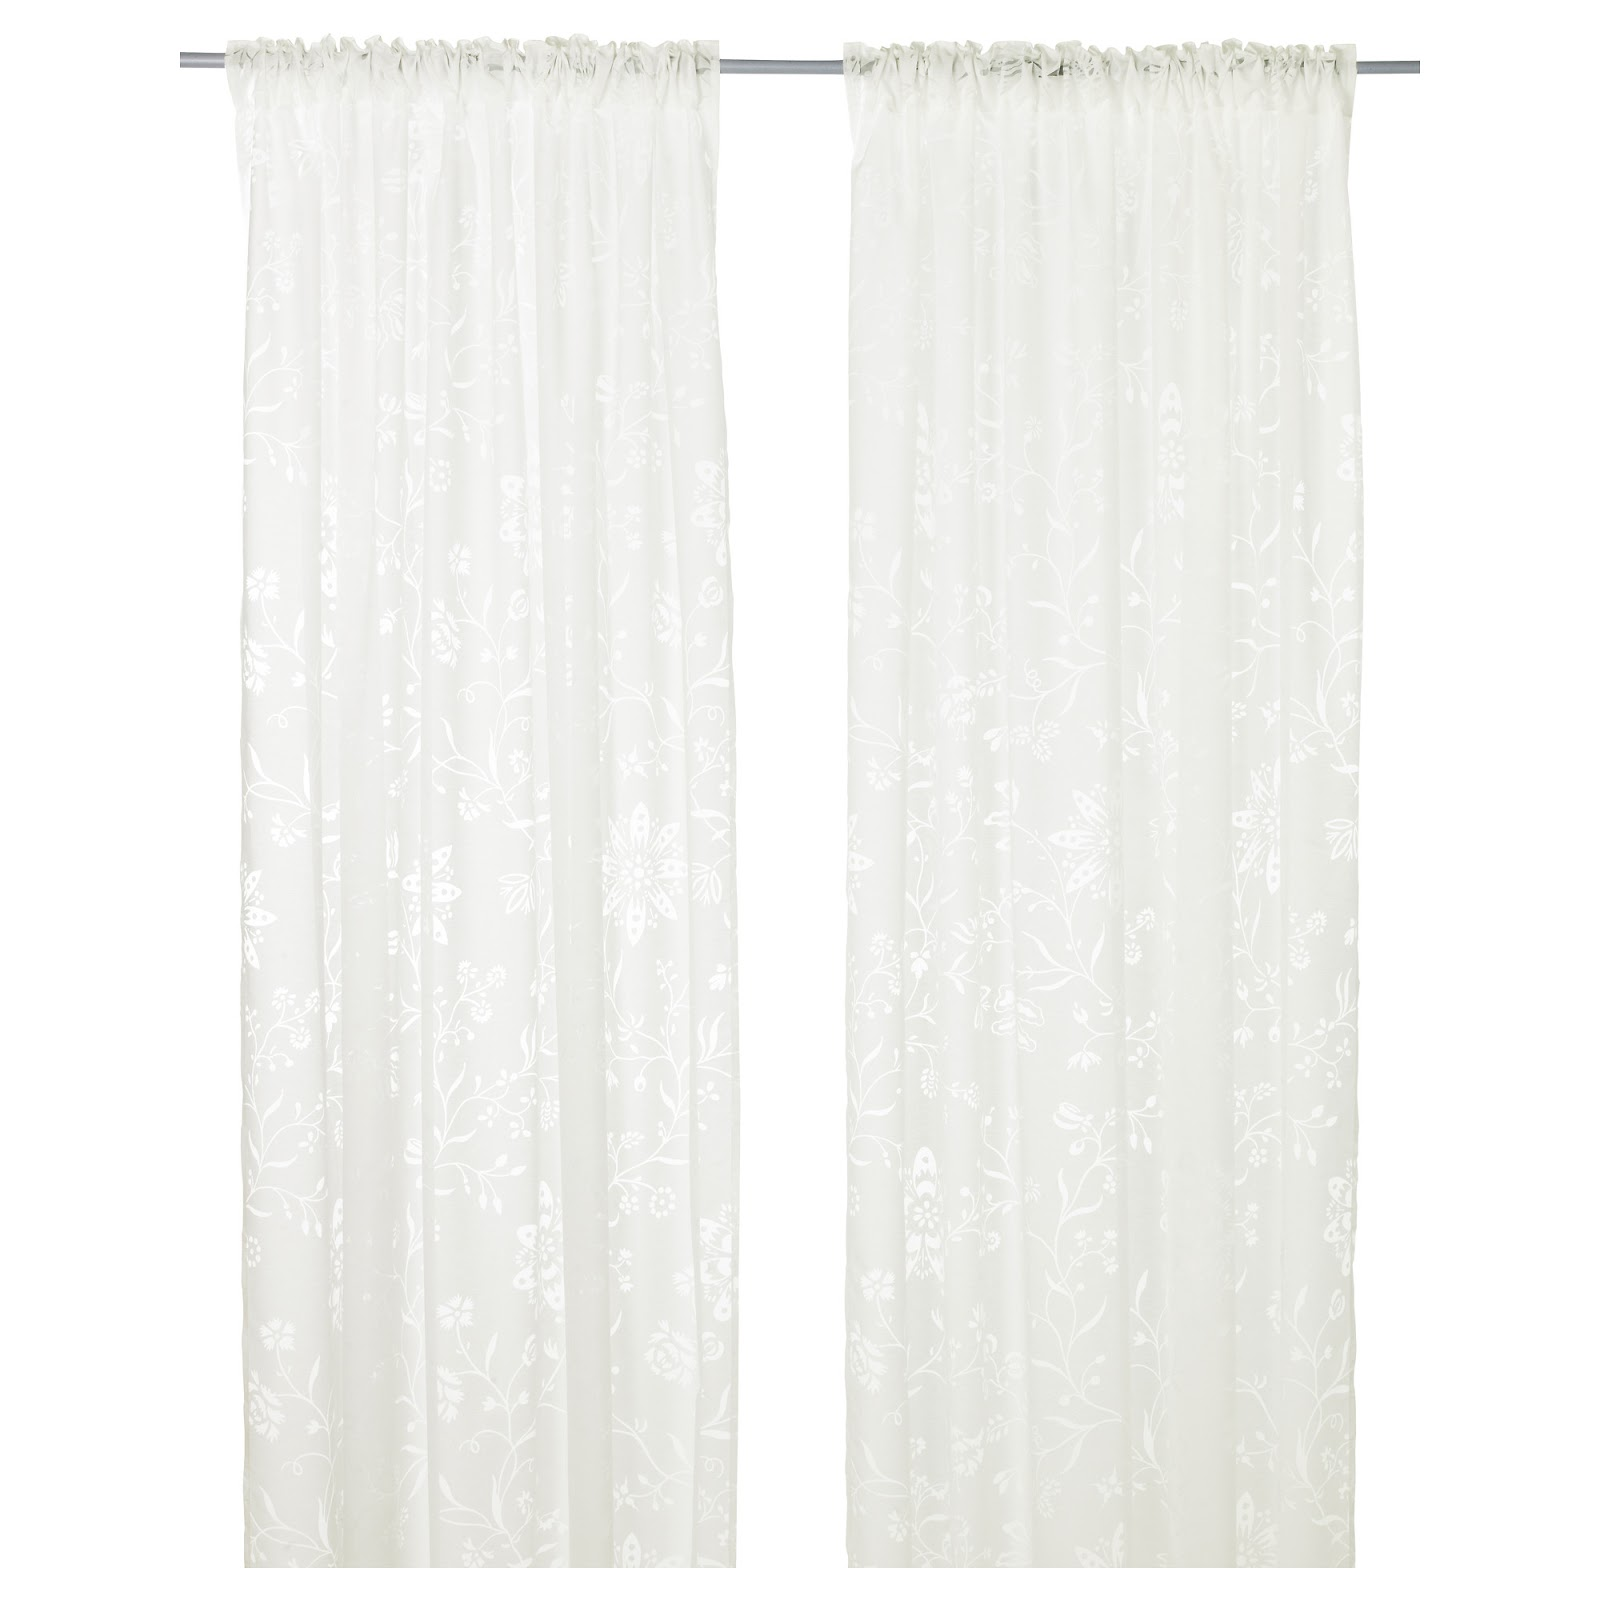 Curtains For Trailers Travel Trucks Vans Vaulted Ceilings